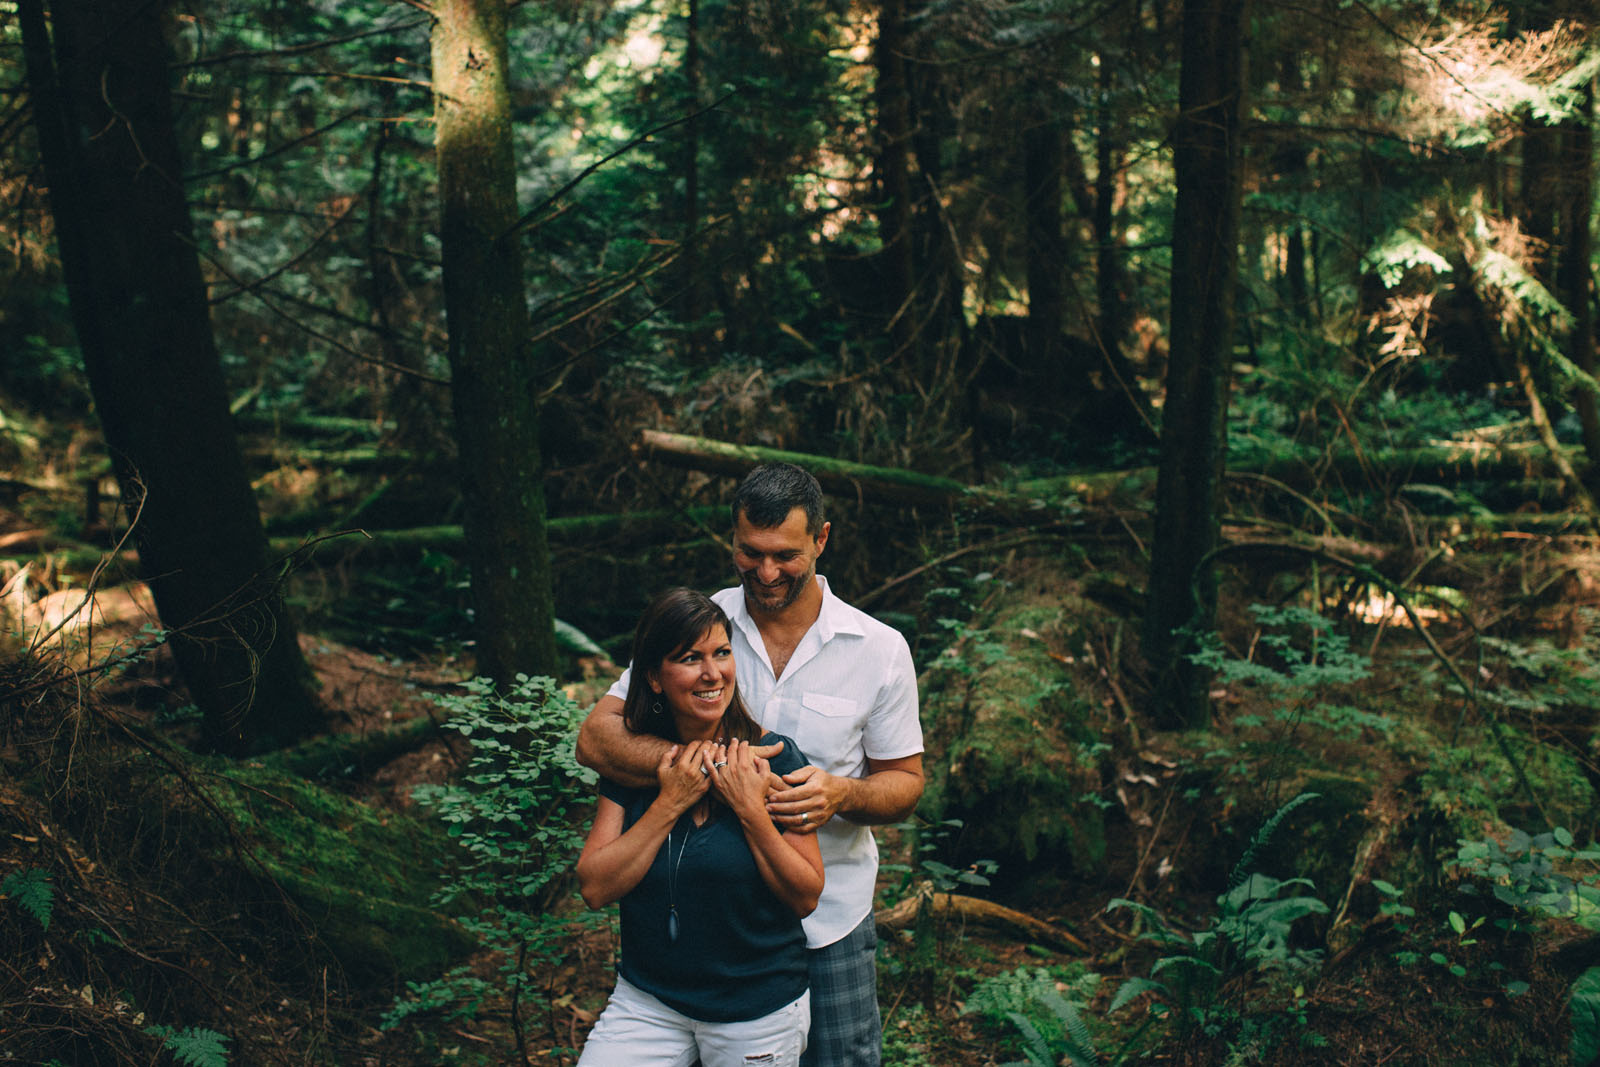 Stanley-Park-family-portrait-Vancouver-photographer-Sam-Wong-of-Visual-Cravings_08